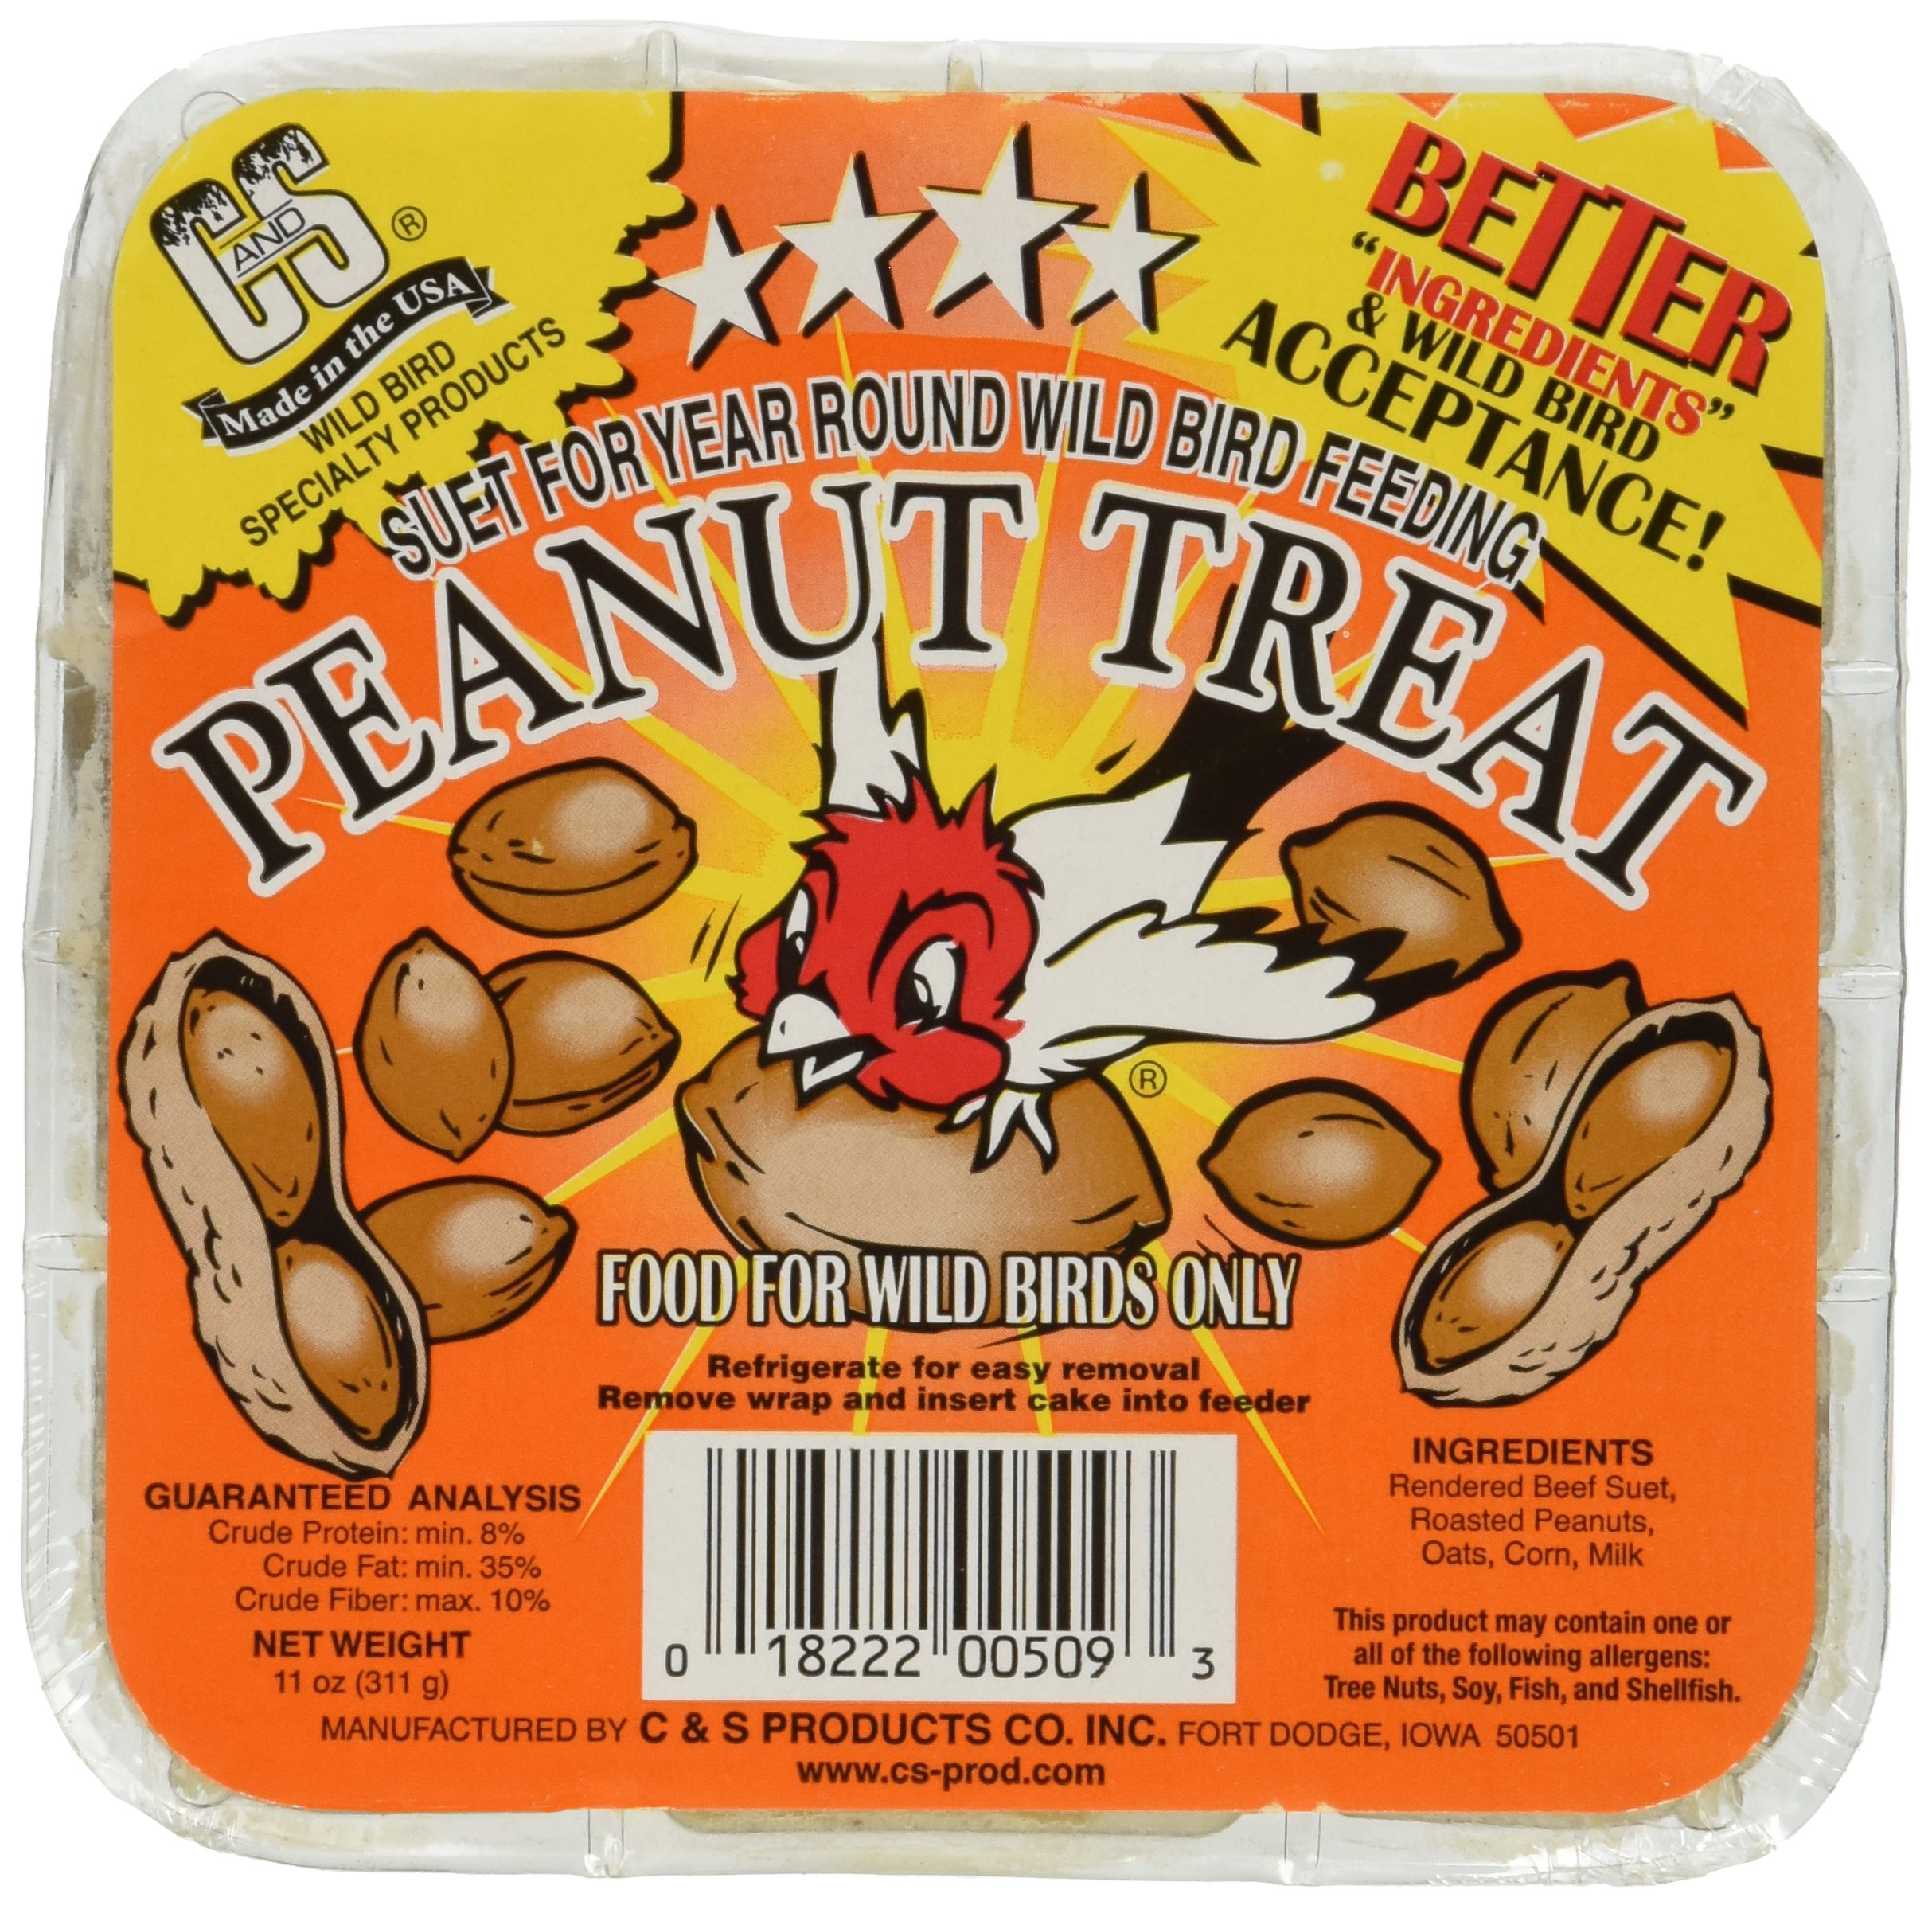 C & S Products Peanut Treat, 12 pack by C & S Products